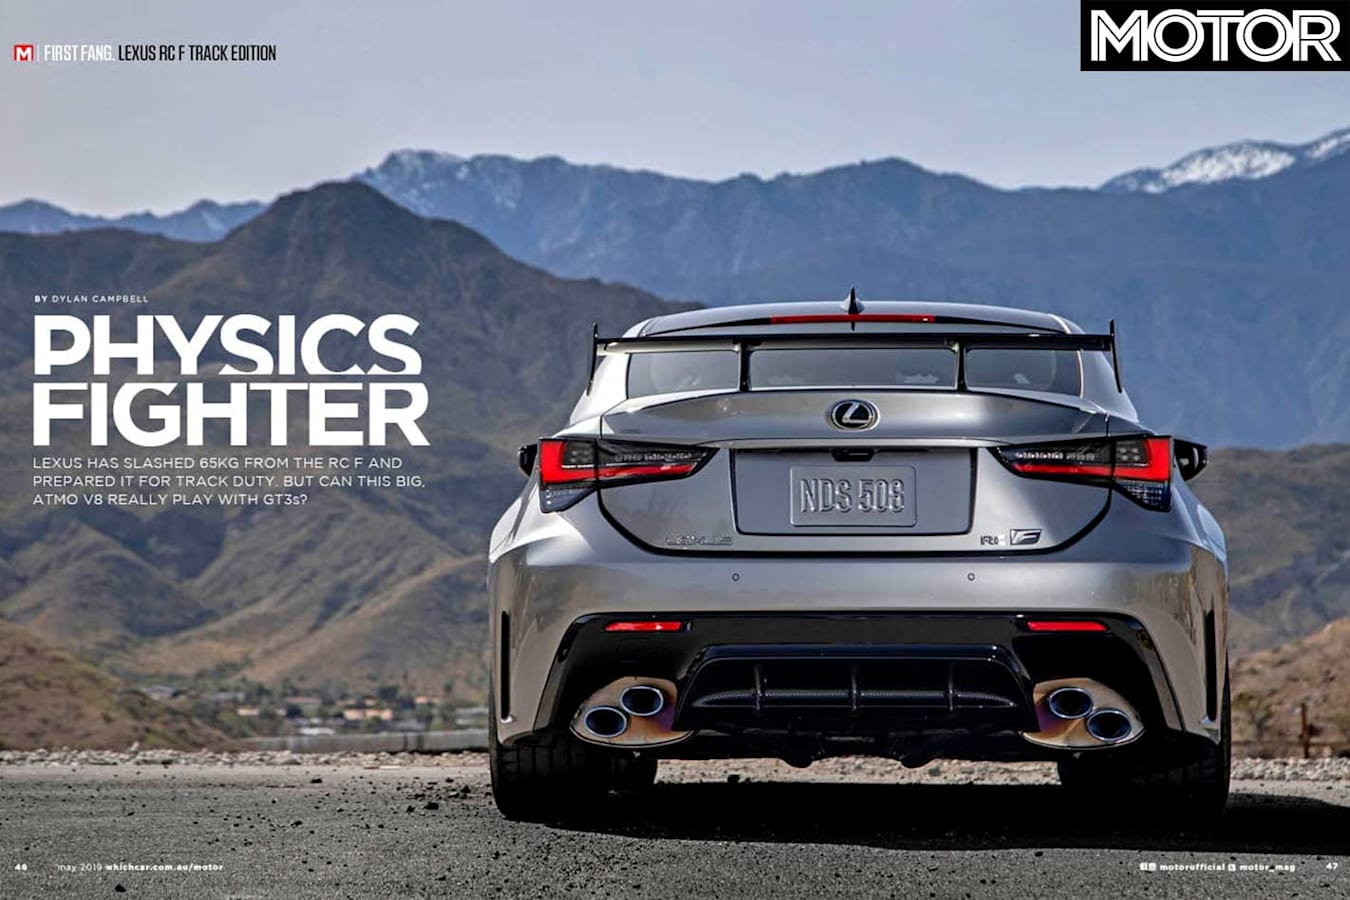 MOTOR Magazine May 2019 Issue Preview Lexus RC F Track Edition Fanged Jpg